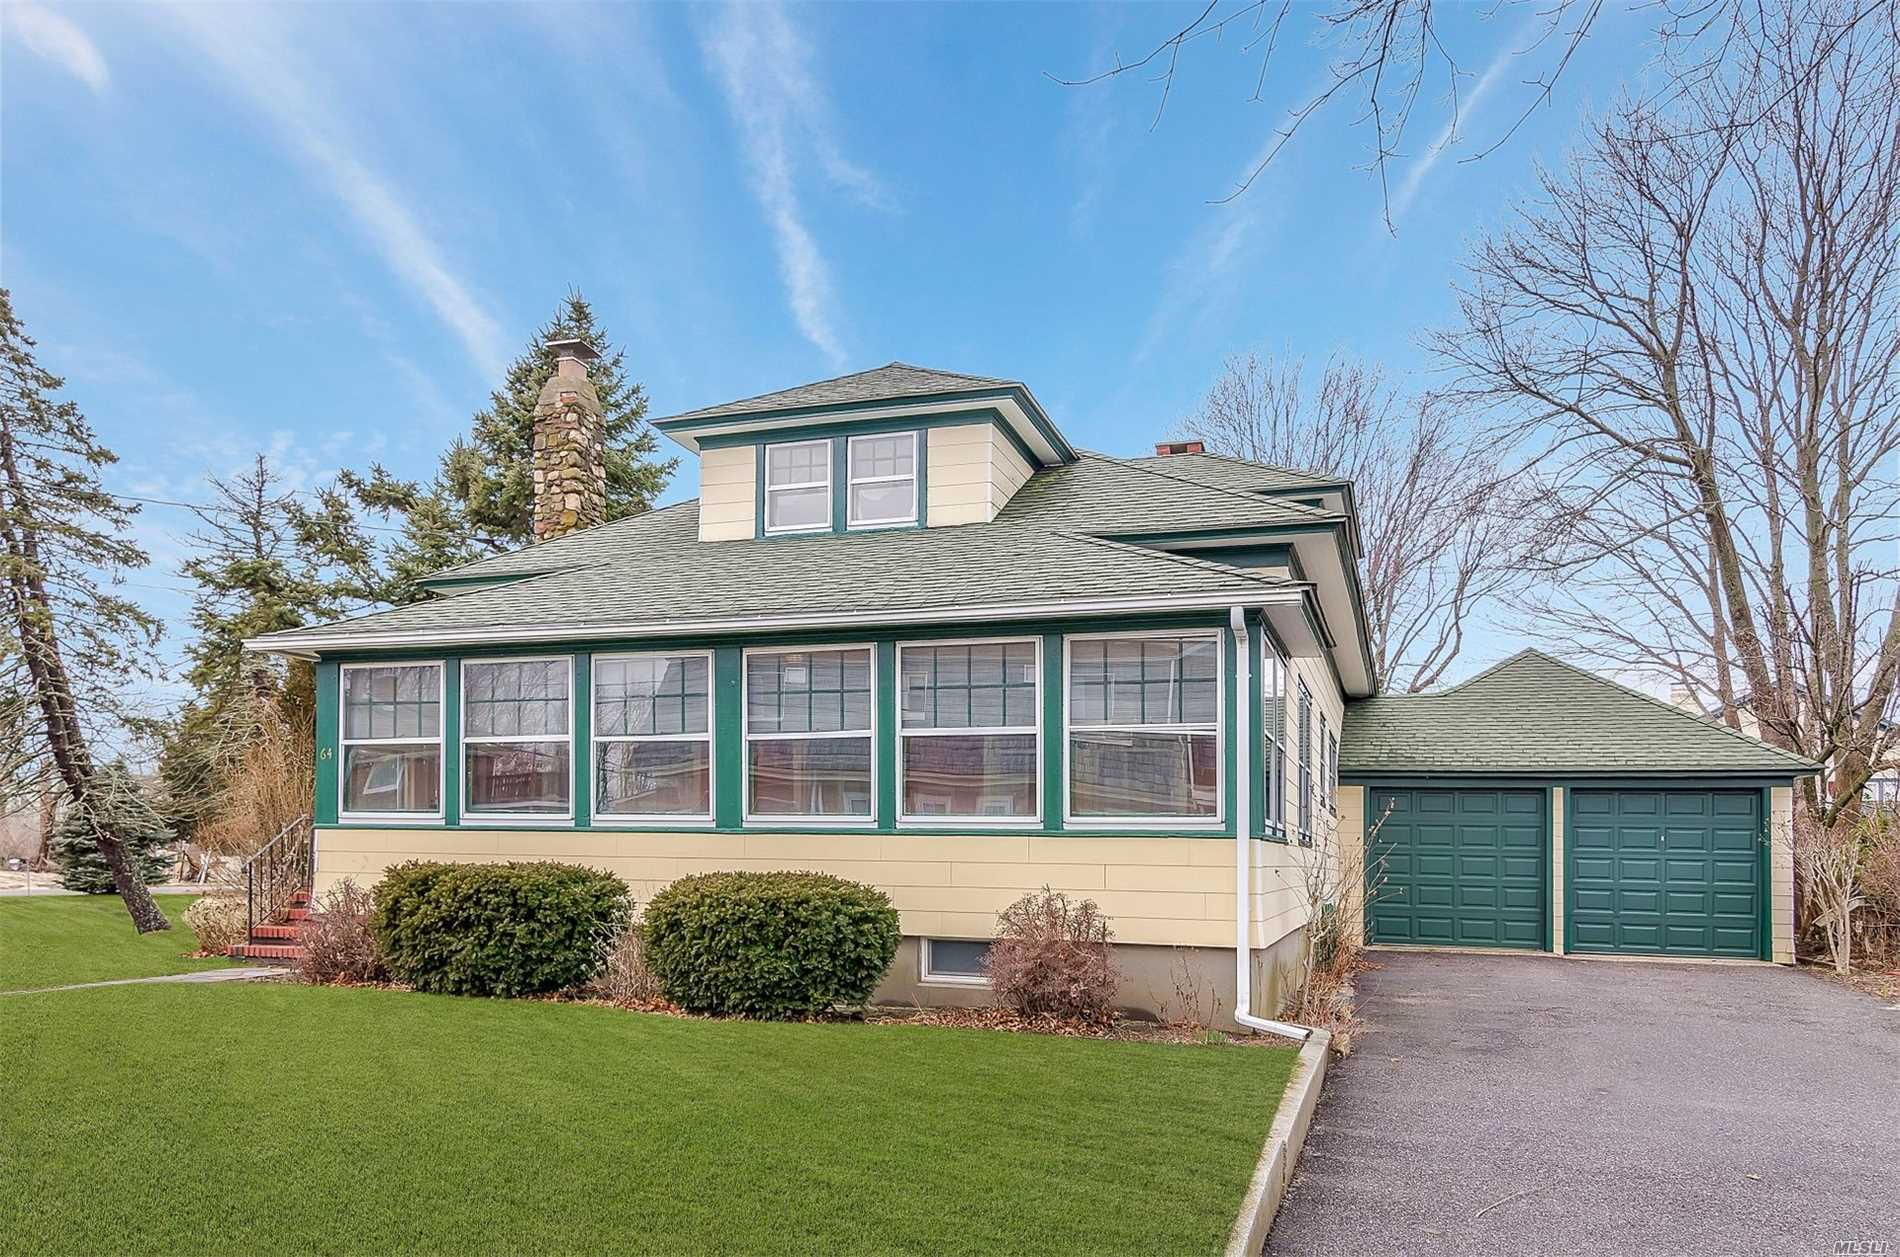 1920'S Craftsman Across The Street From The Peconic Bay. Around The Corner From Beautiful, Sandy, Bay Beach In Coveted S. Jamesport. 5 Bedroom, 2 Bath Classic.